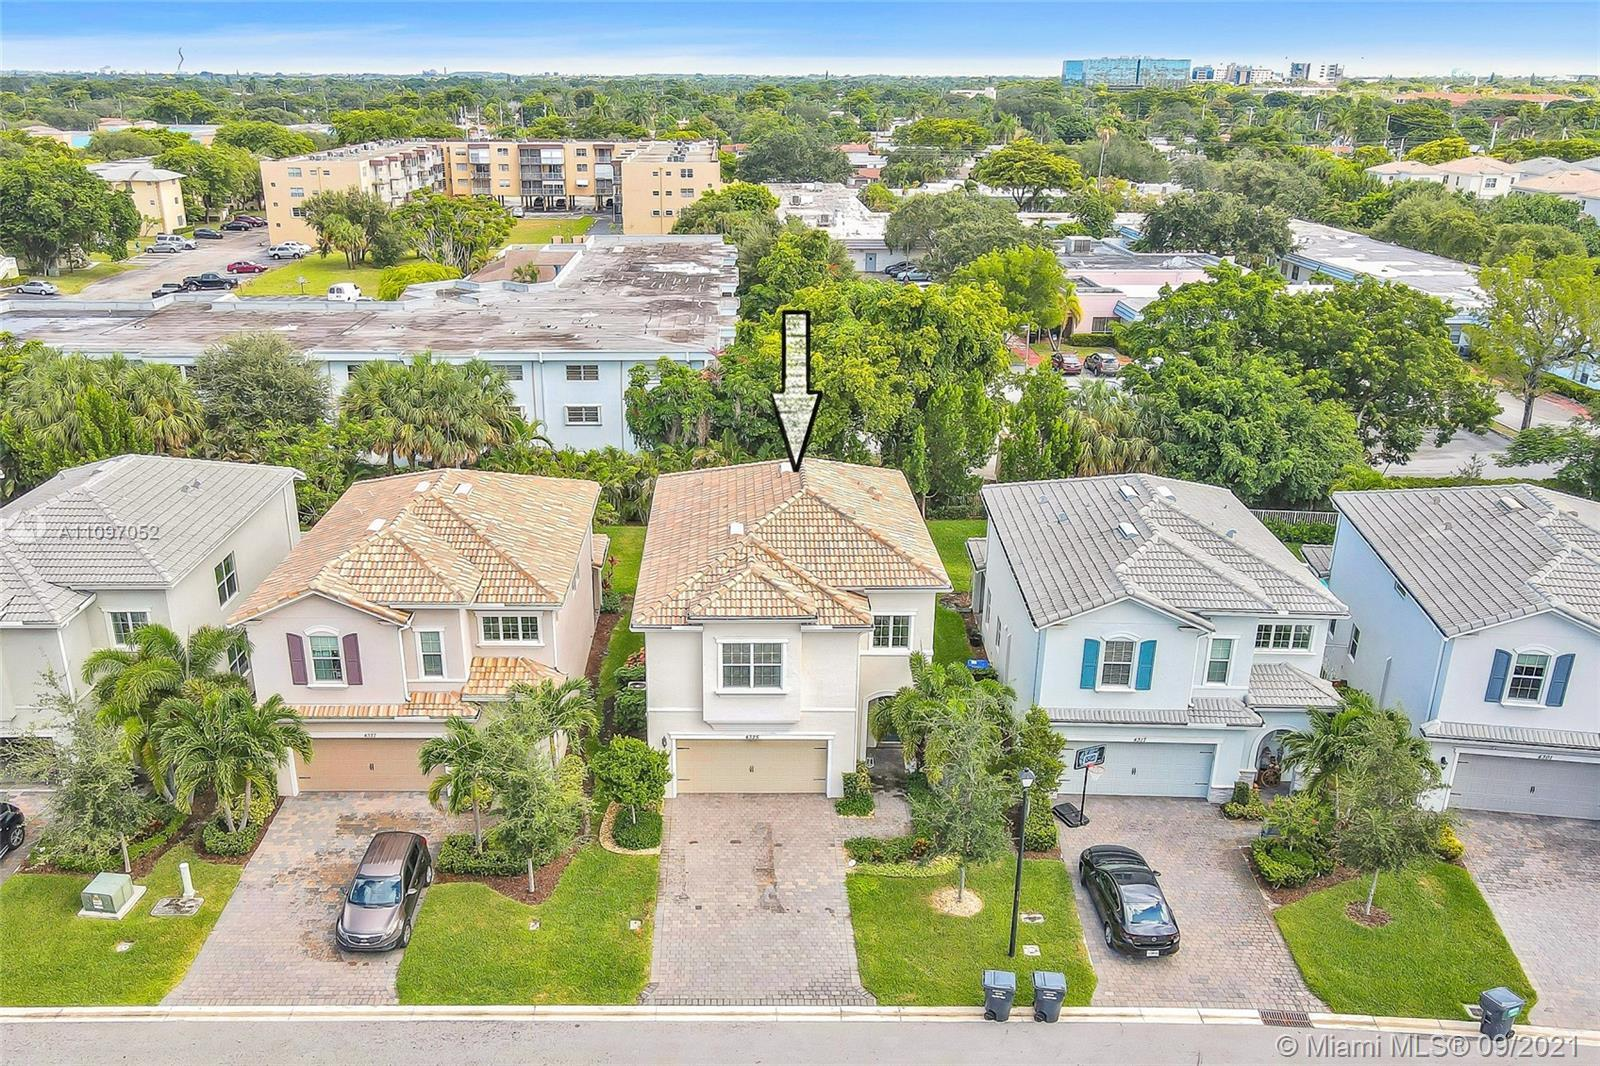 Parkview at Hillcrest - Phase 1 is one of the most sought-after communities in Broward County. We ar